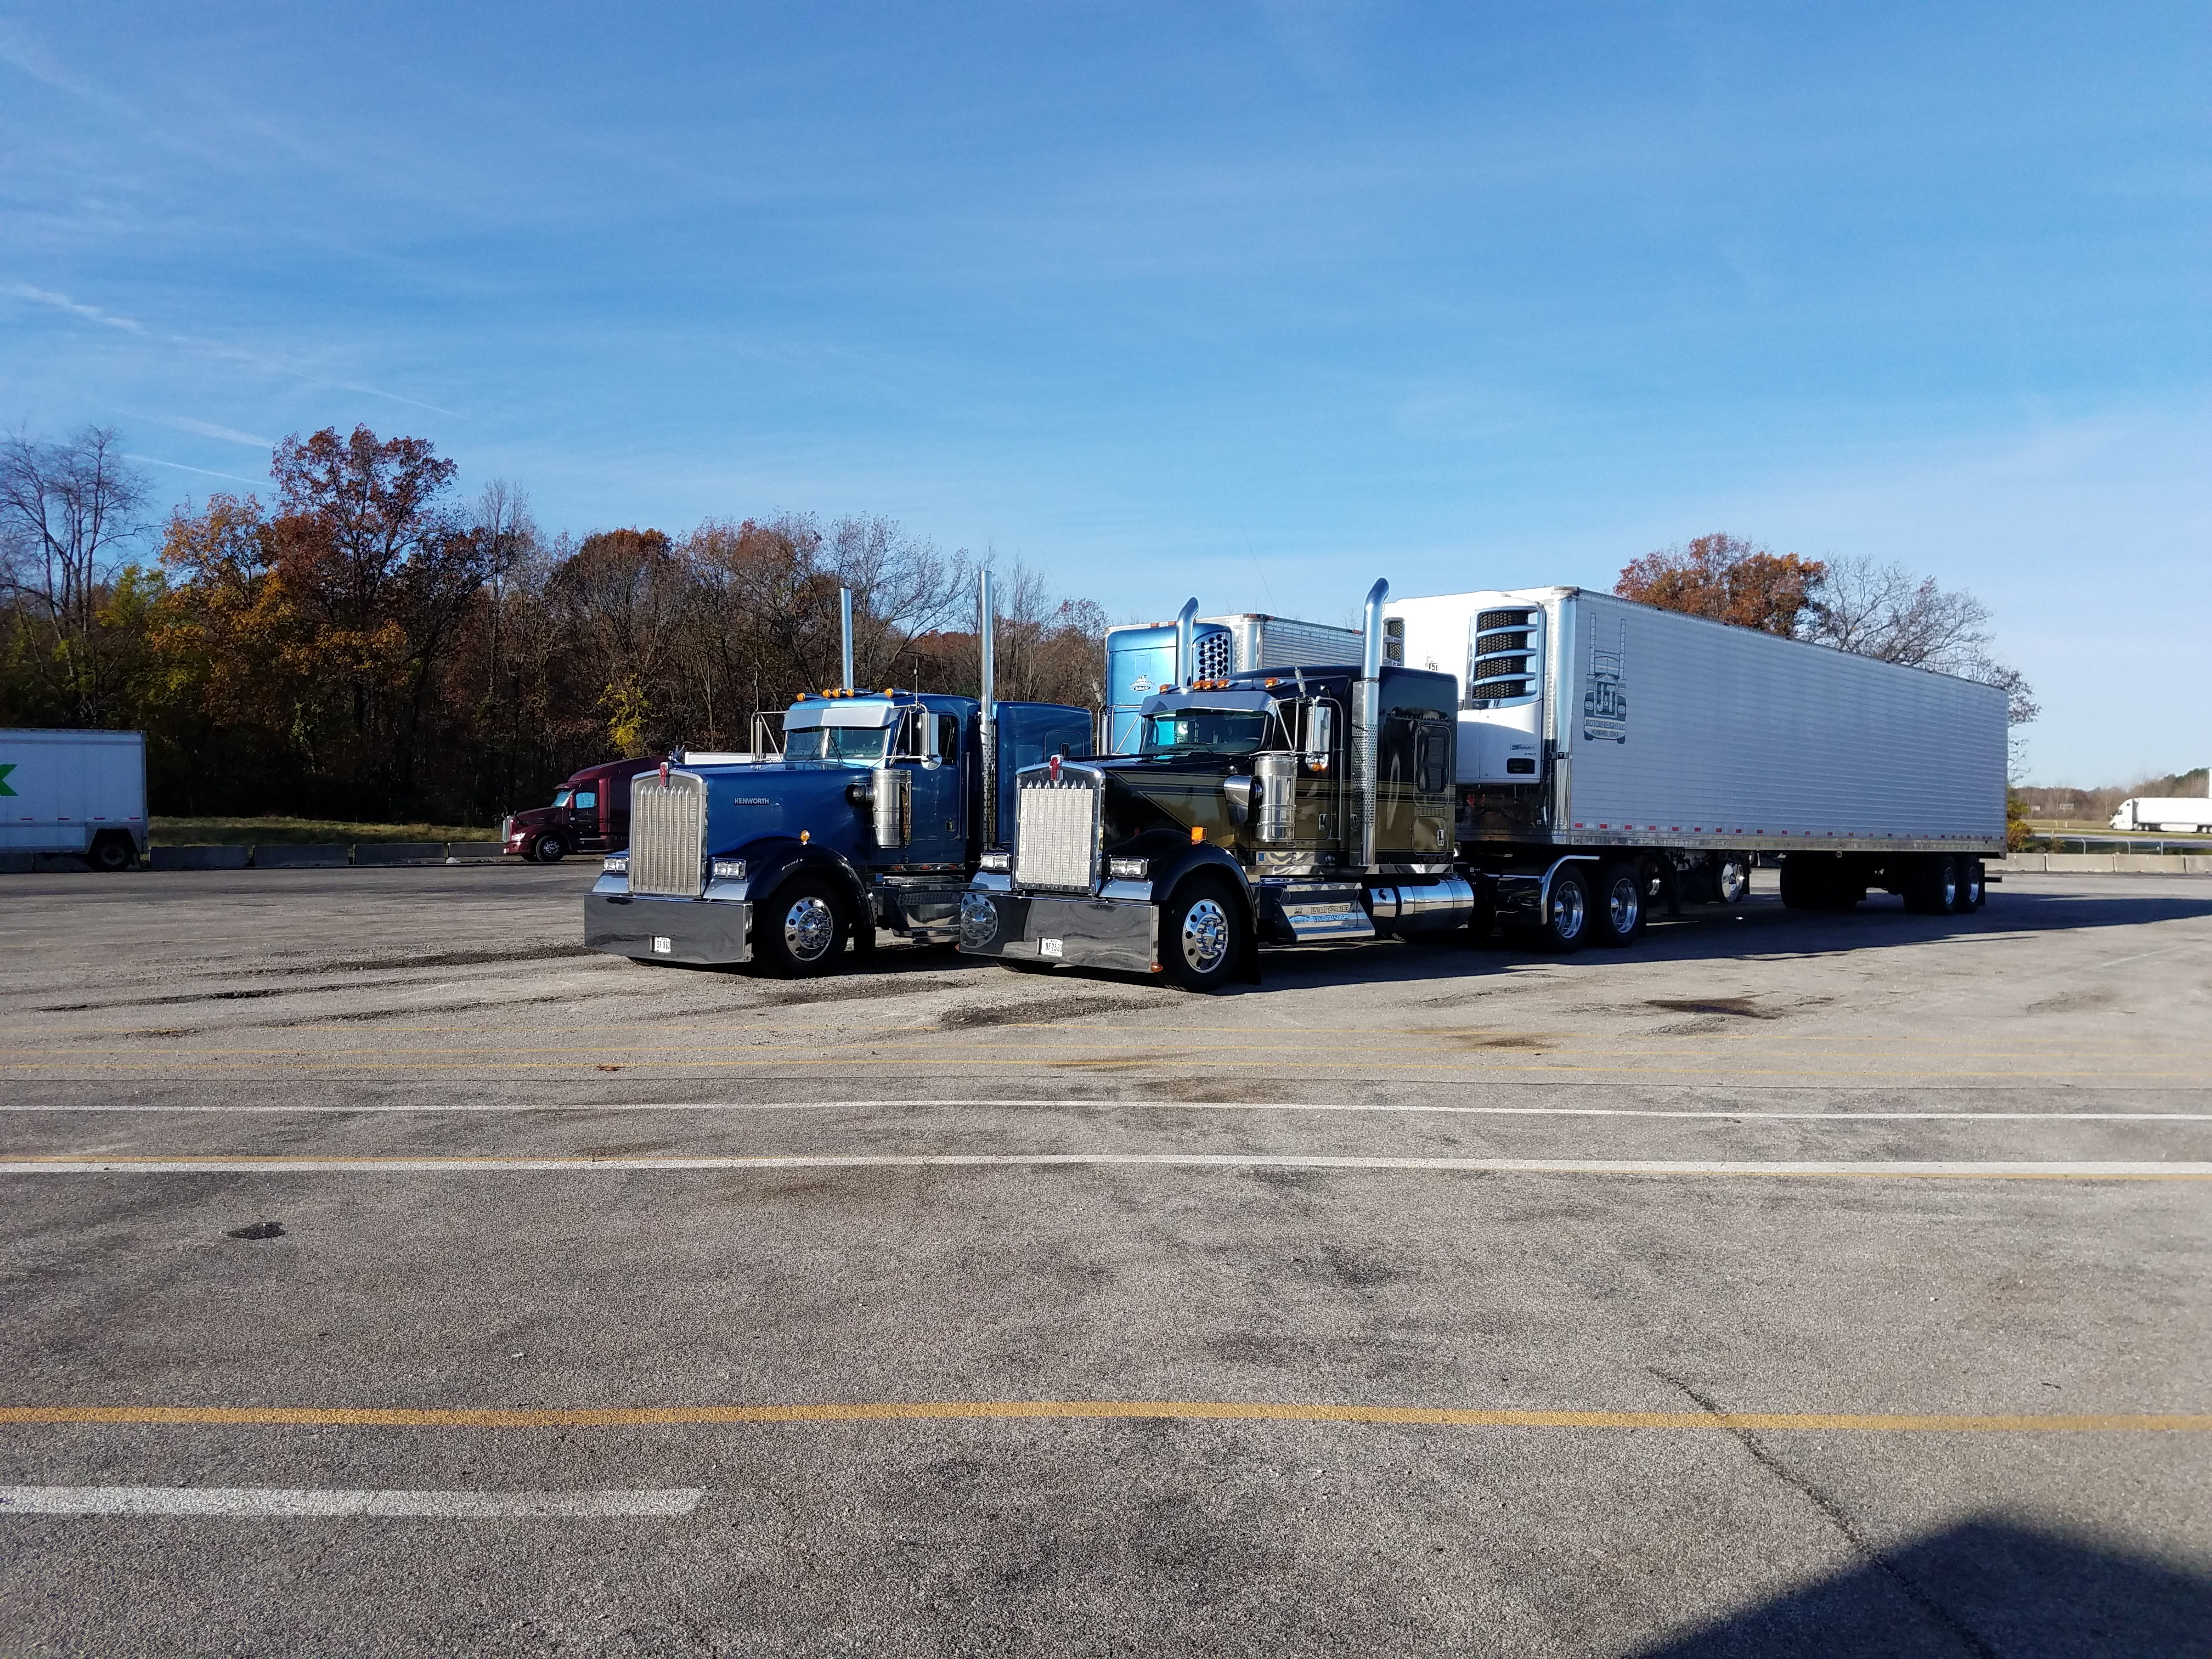 Tab's Big Rig, third picture